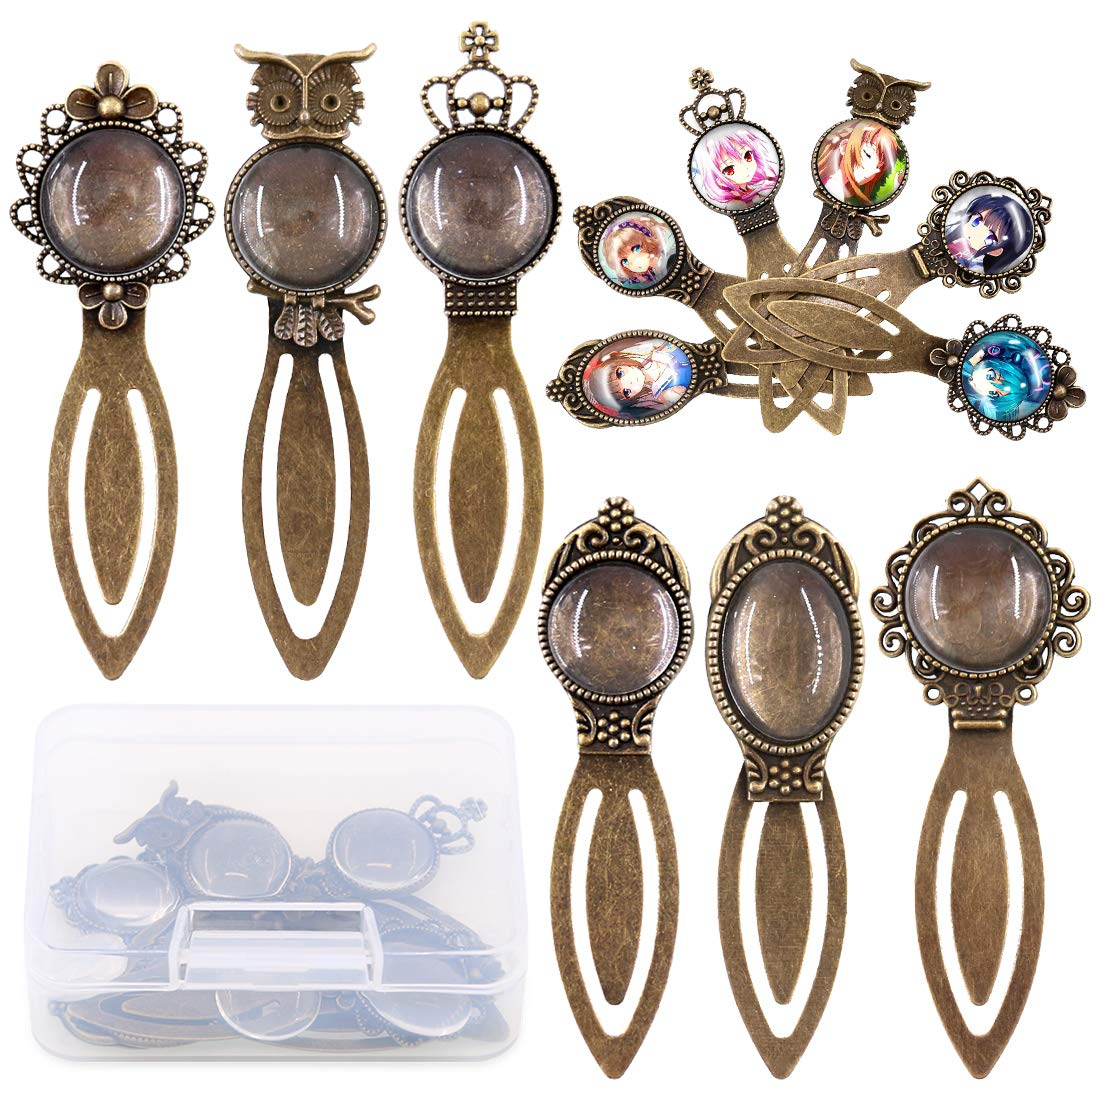 Swpeet 13Pcs 6 Styles Antique Bronze Bookmark Pendant Tray Kit, Including 6Pcs Assorted Styles Bookmark Pendant Tray with 7Pcs Glass Cabochon for Bracelet Necklace DIY Jewelry Making